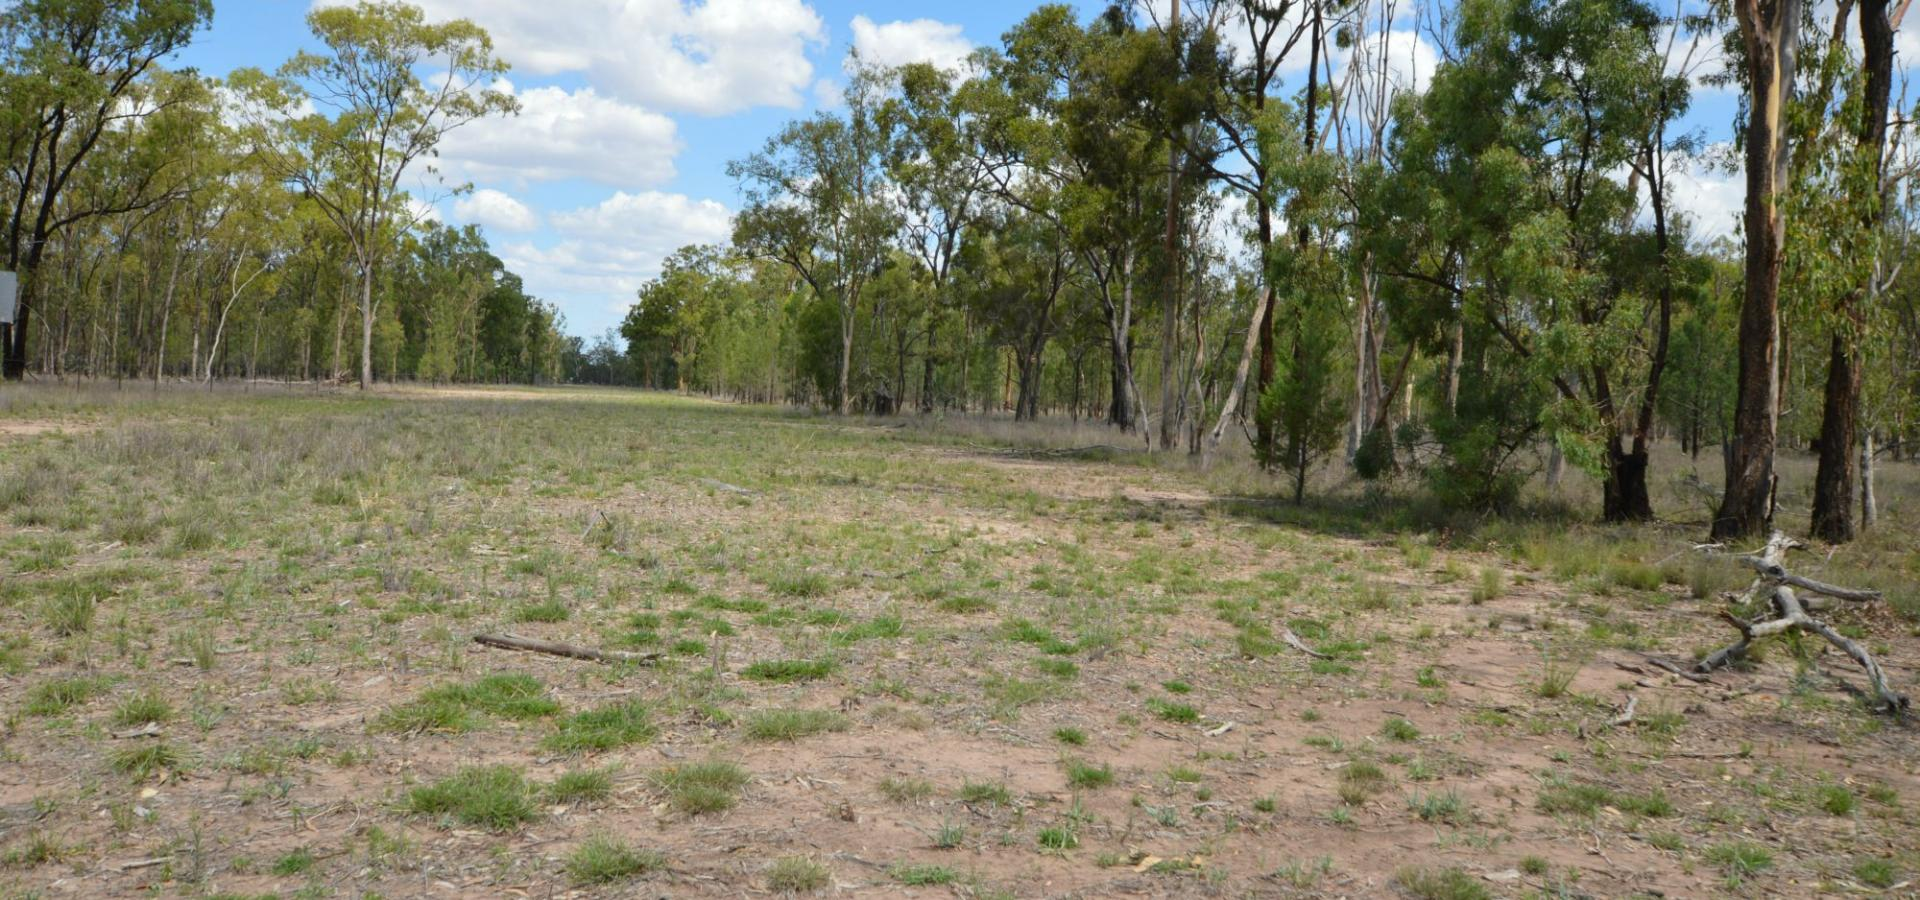 FLAT USEABLE LAND READY TO BUILD